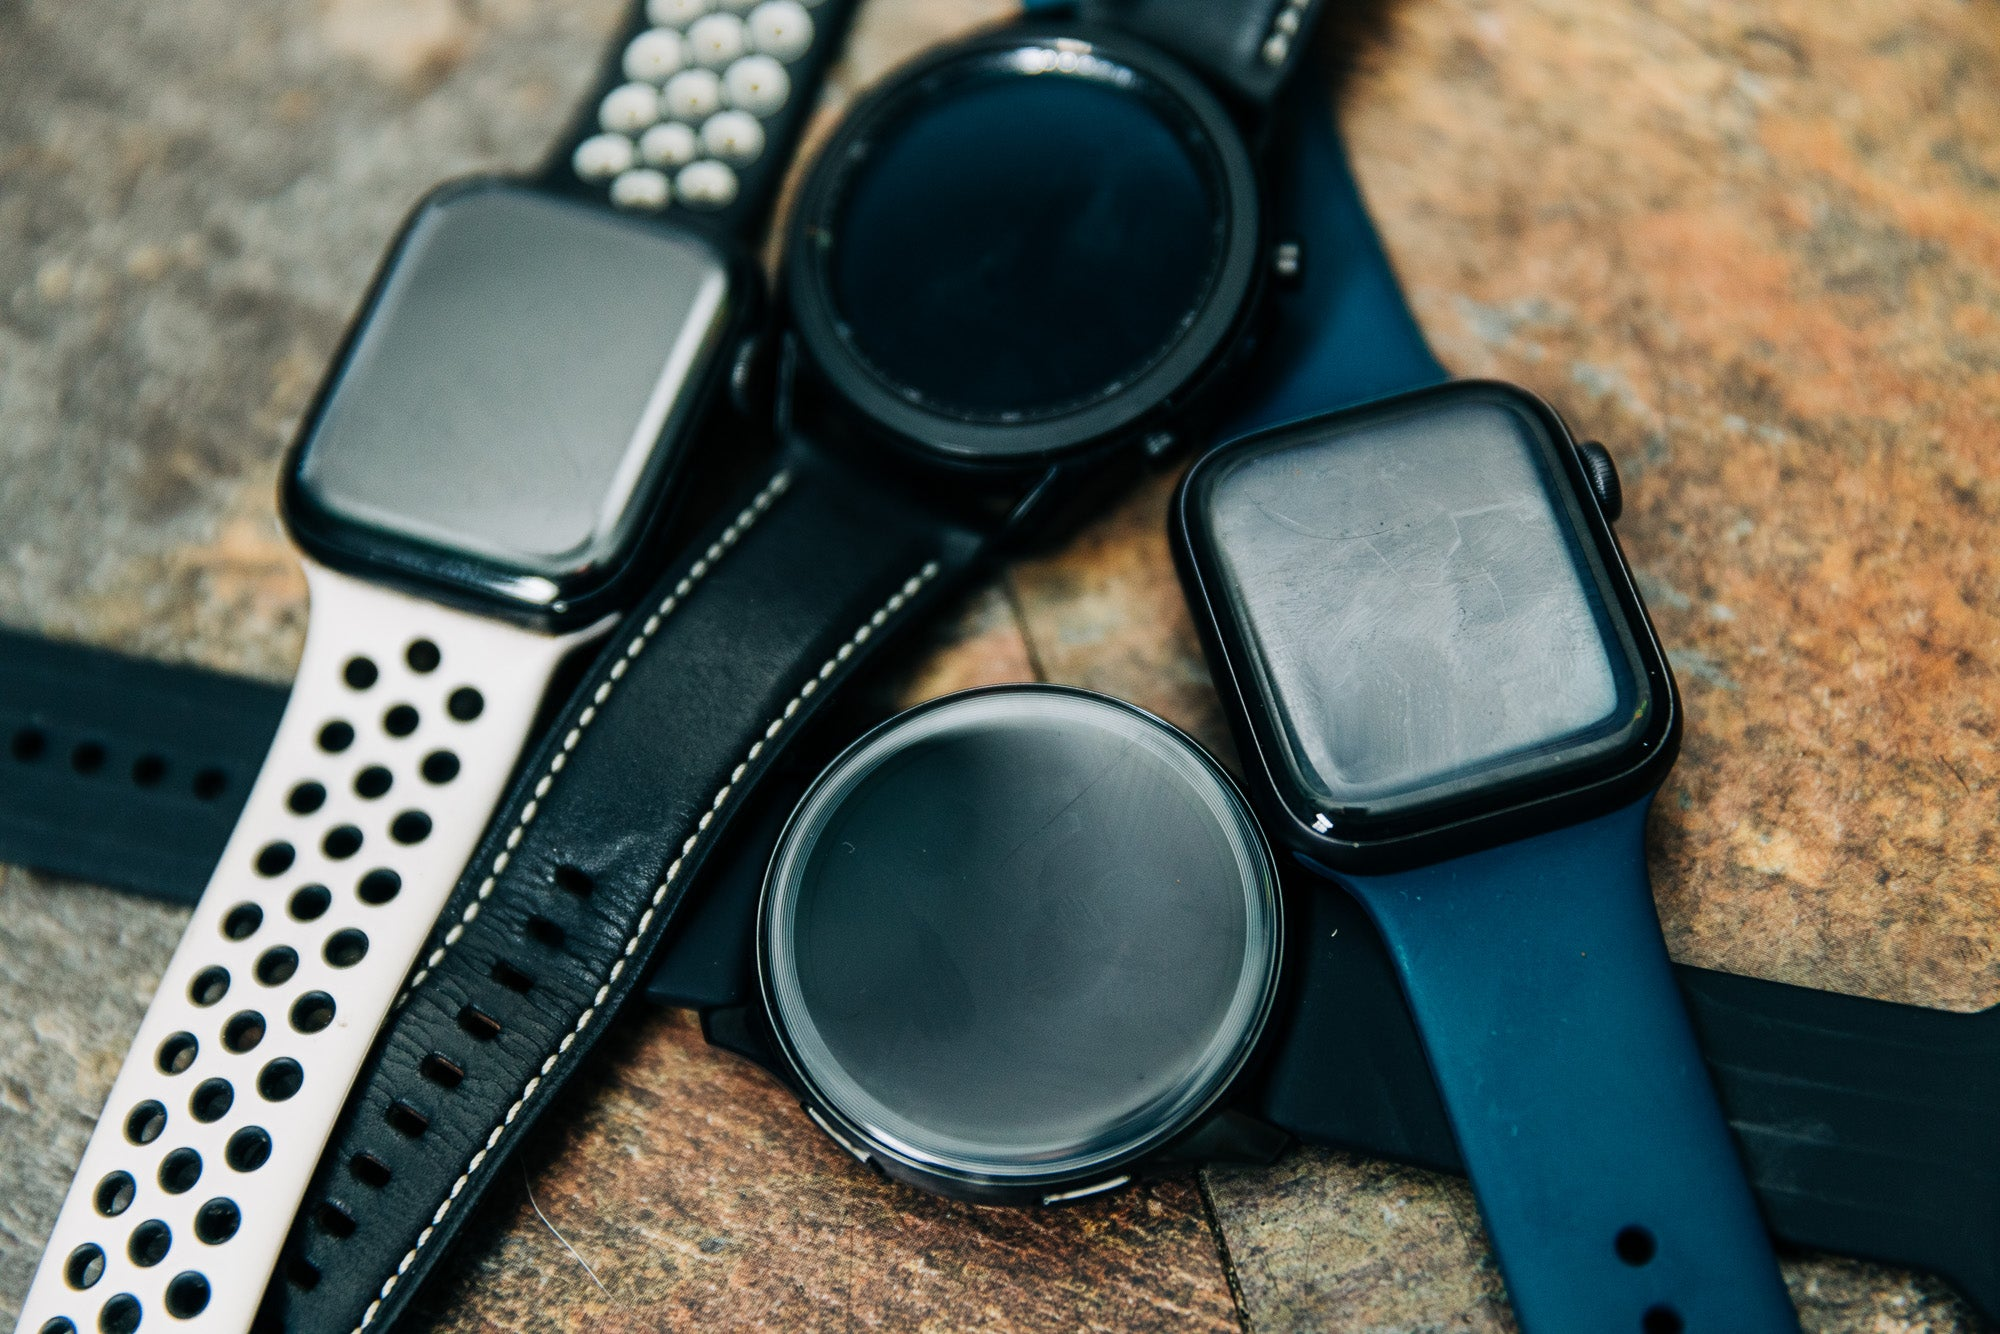 A collection of the best smartwatches including the Apple Watch 6 and the Samsung Galaxy Watch 3